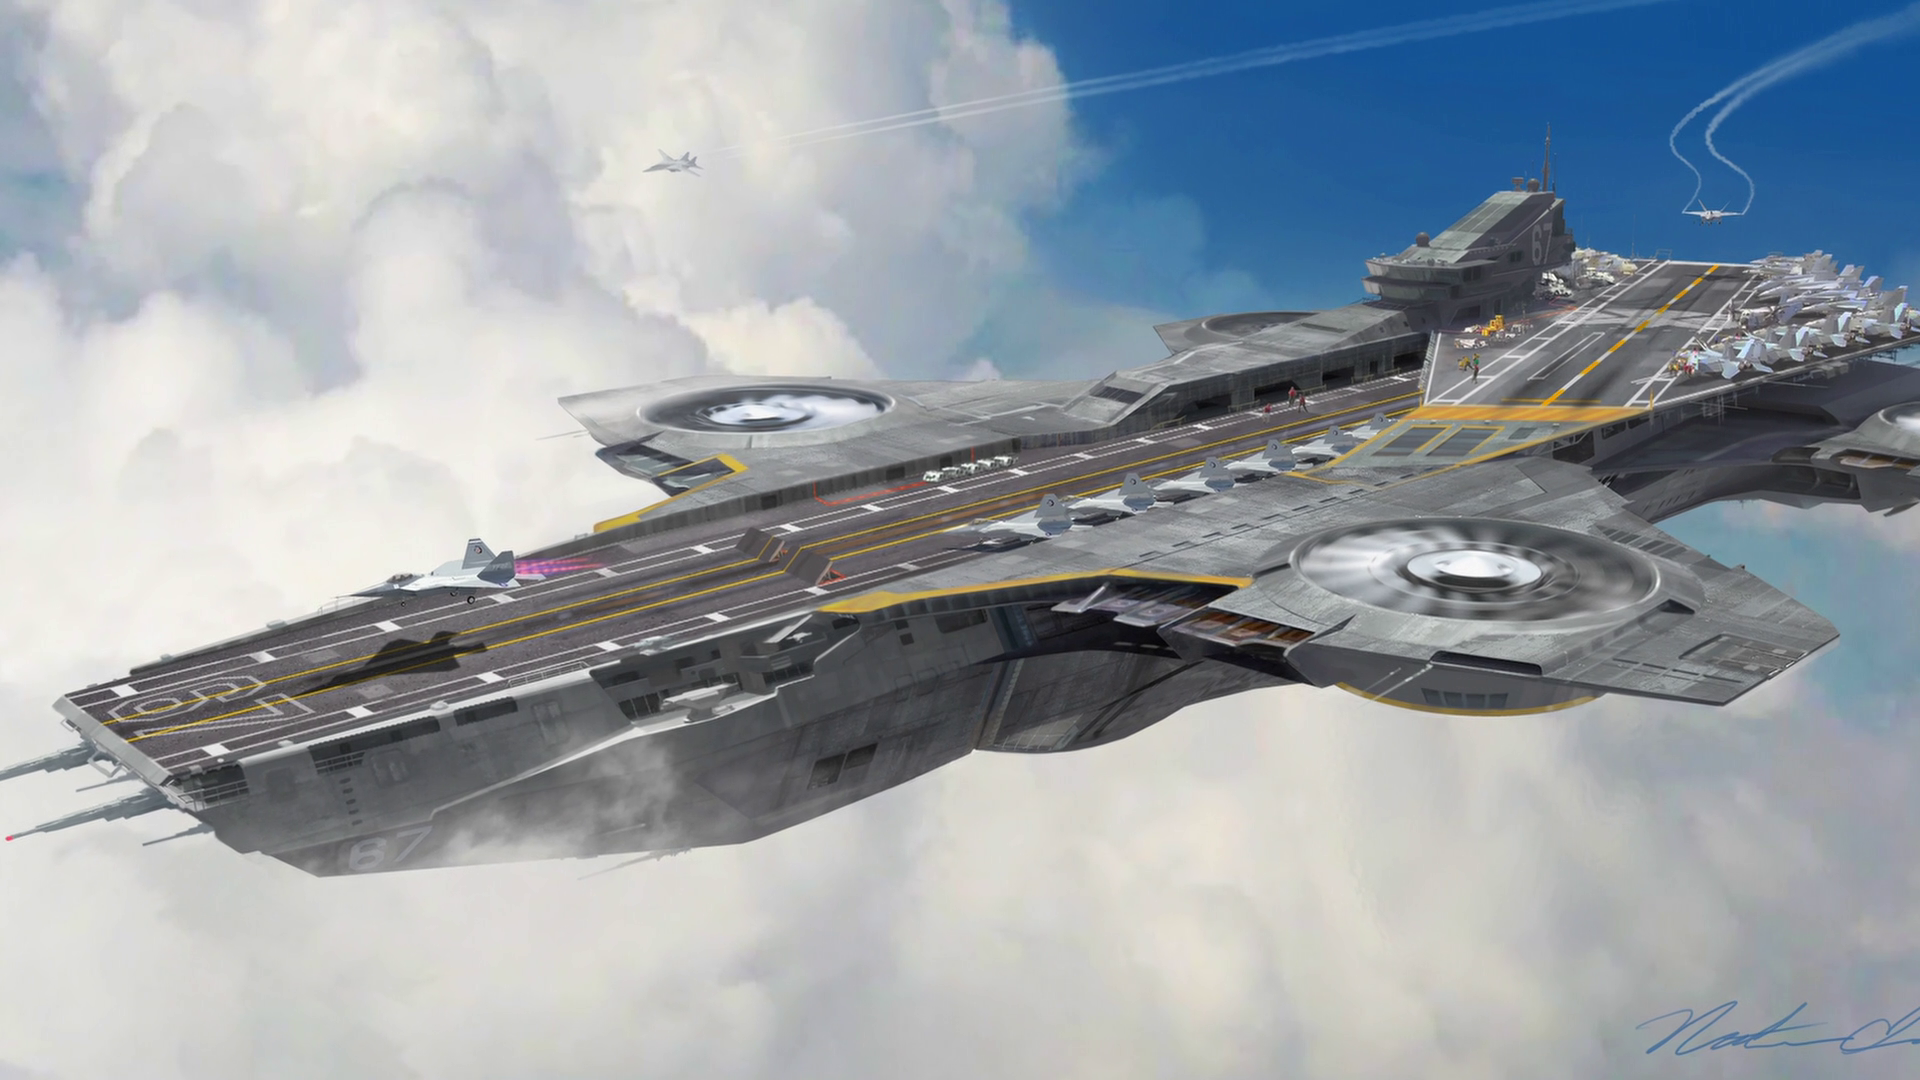 Lego is finally releasing a massive 'Avengers' helicarrier | The ...